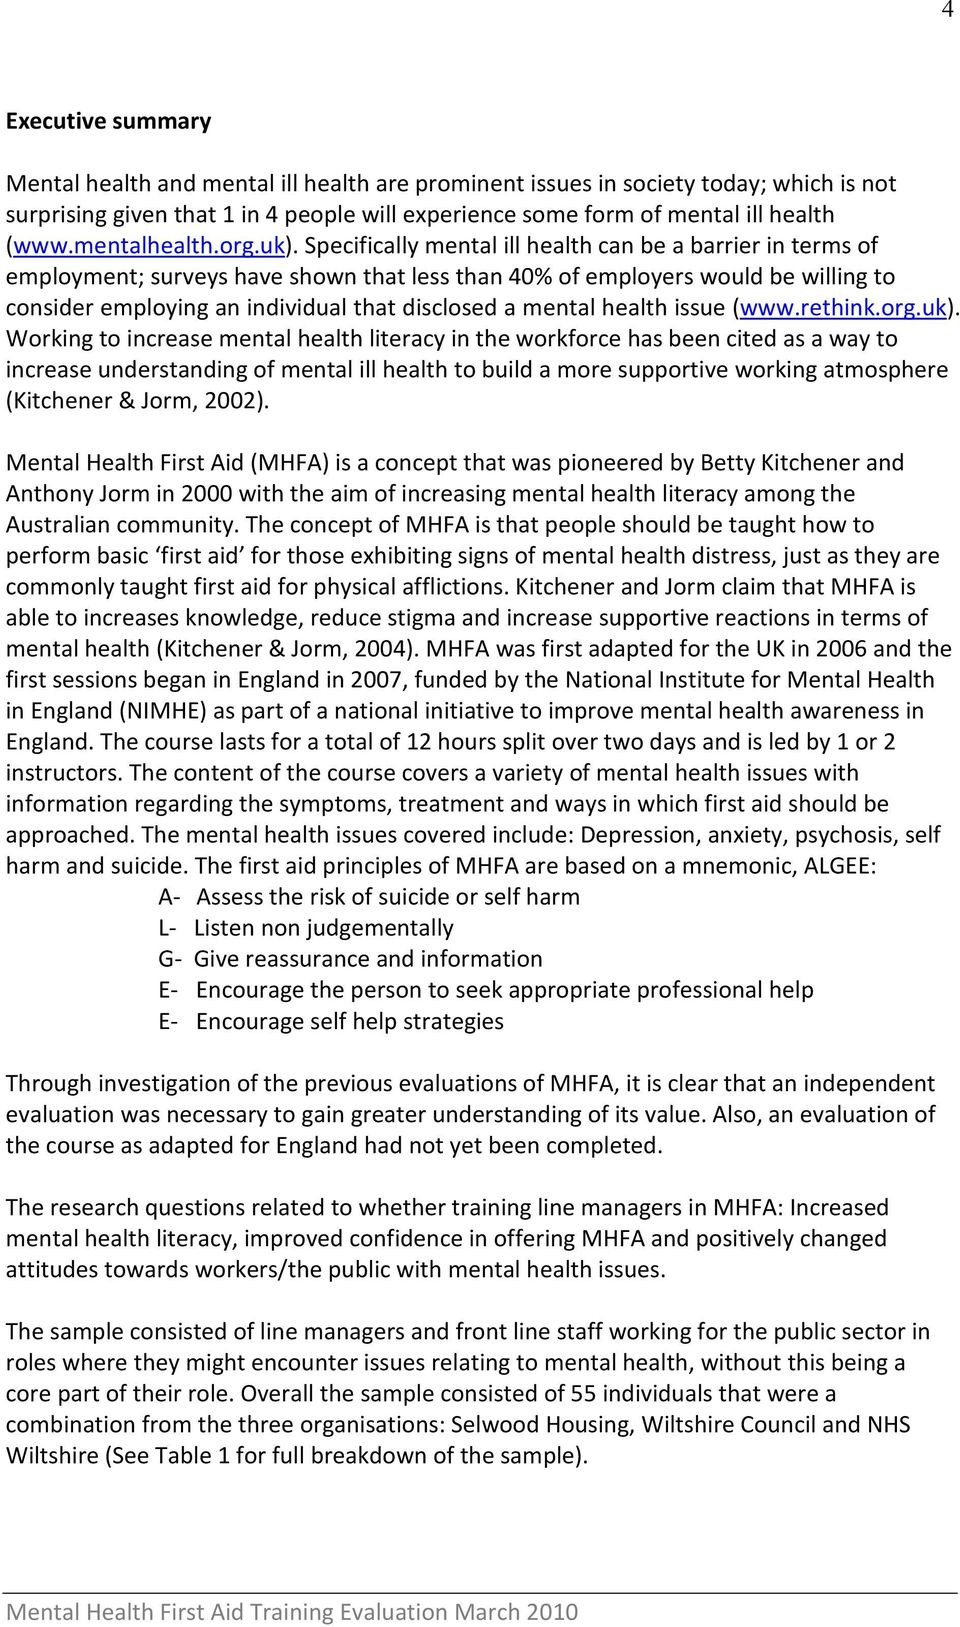 Evaluating Mental Health First Aid Training For Line Managers